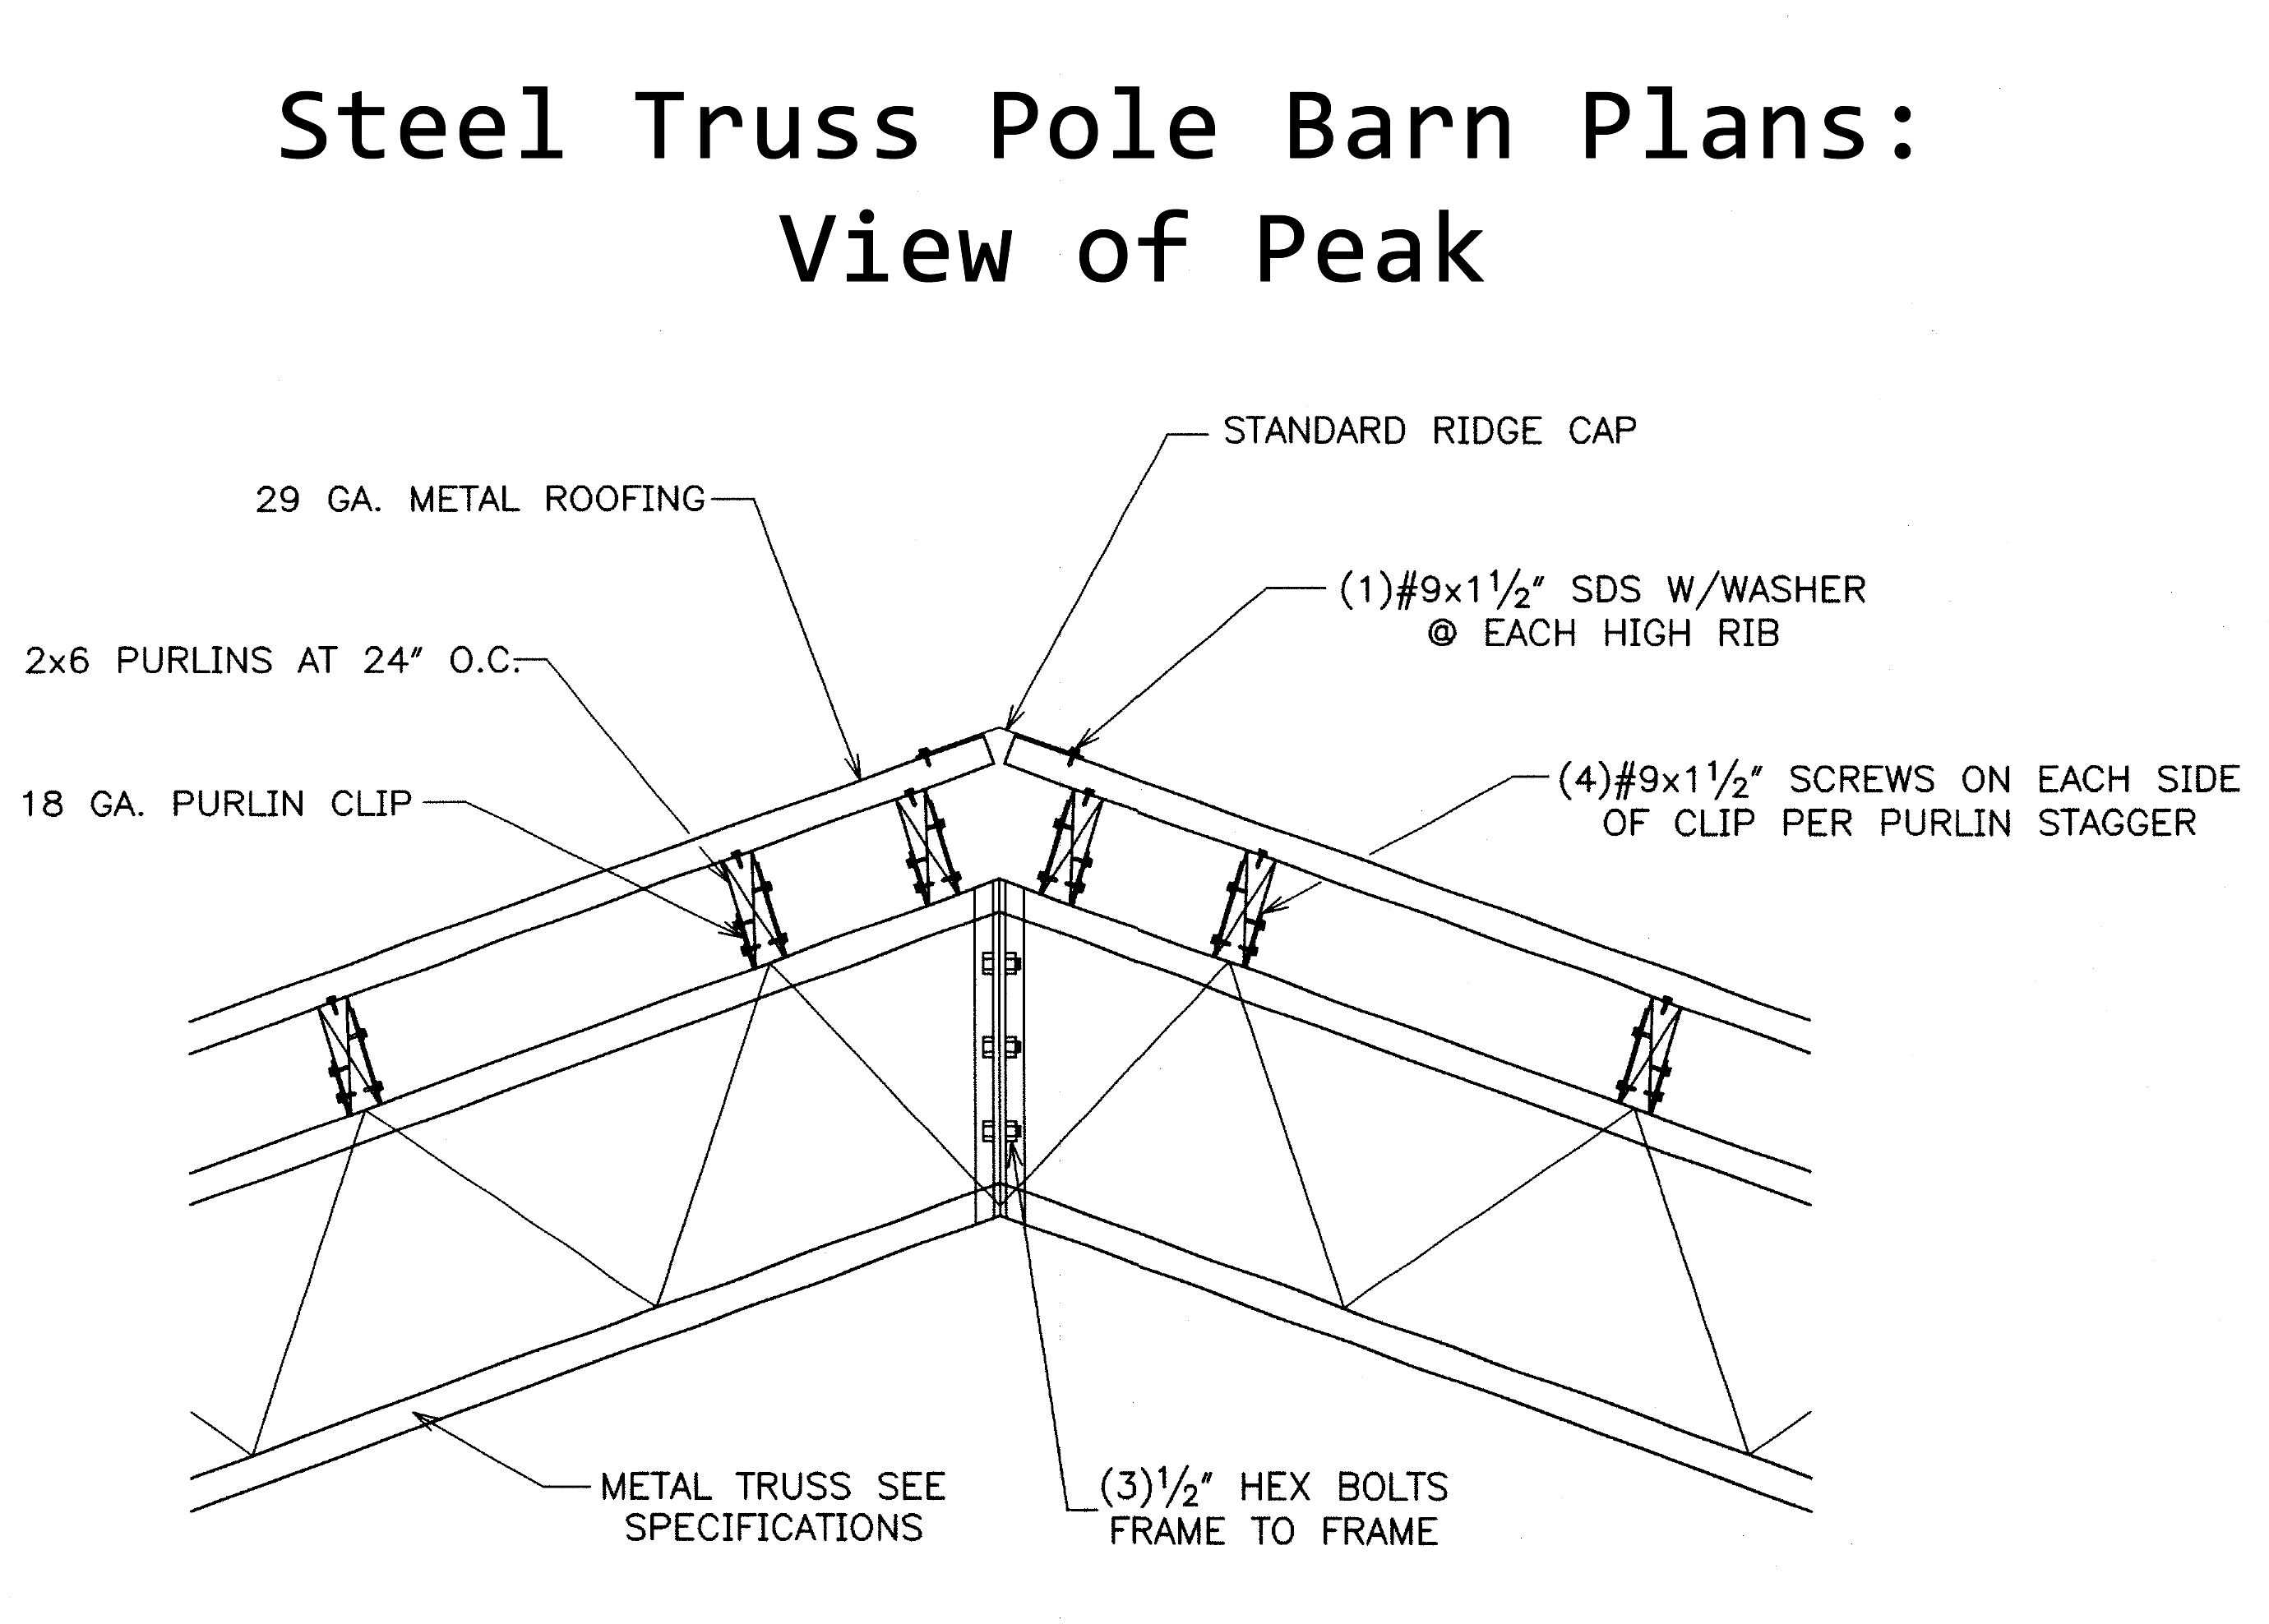 https://0201.nccdn.net/1_2/000/000/186/7aa/steel-truss-barn-plans-peak.png